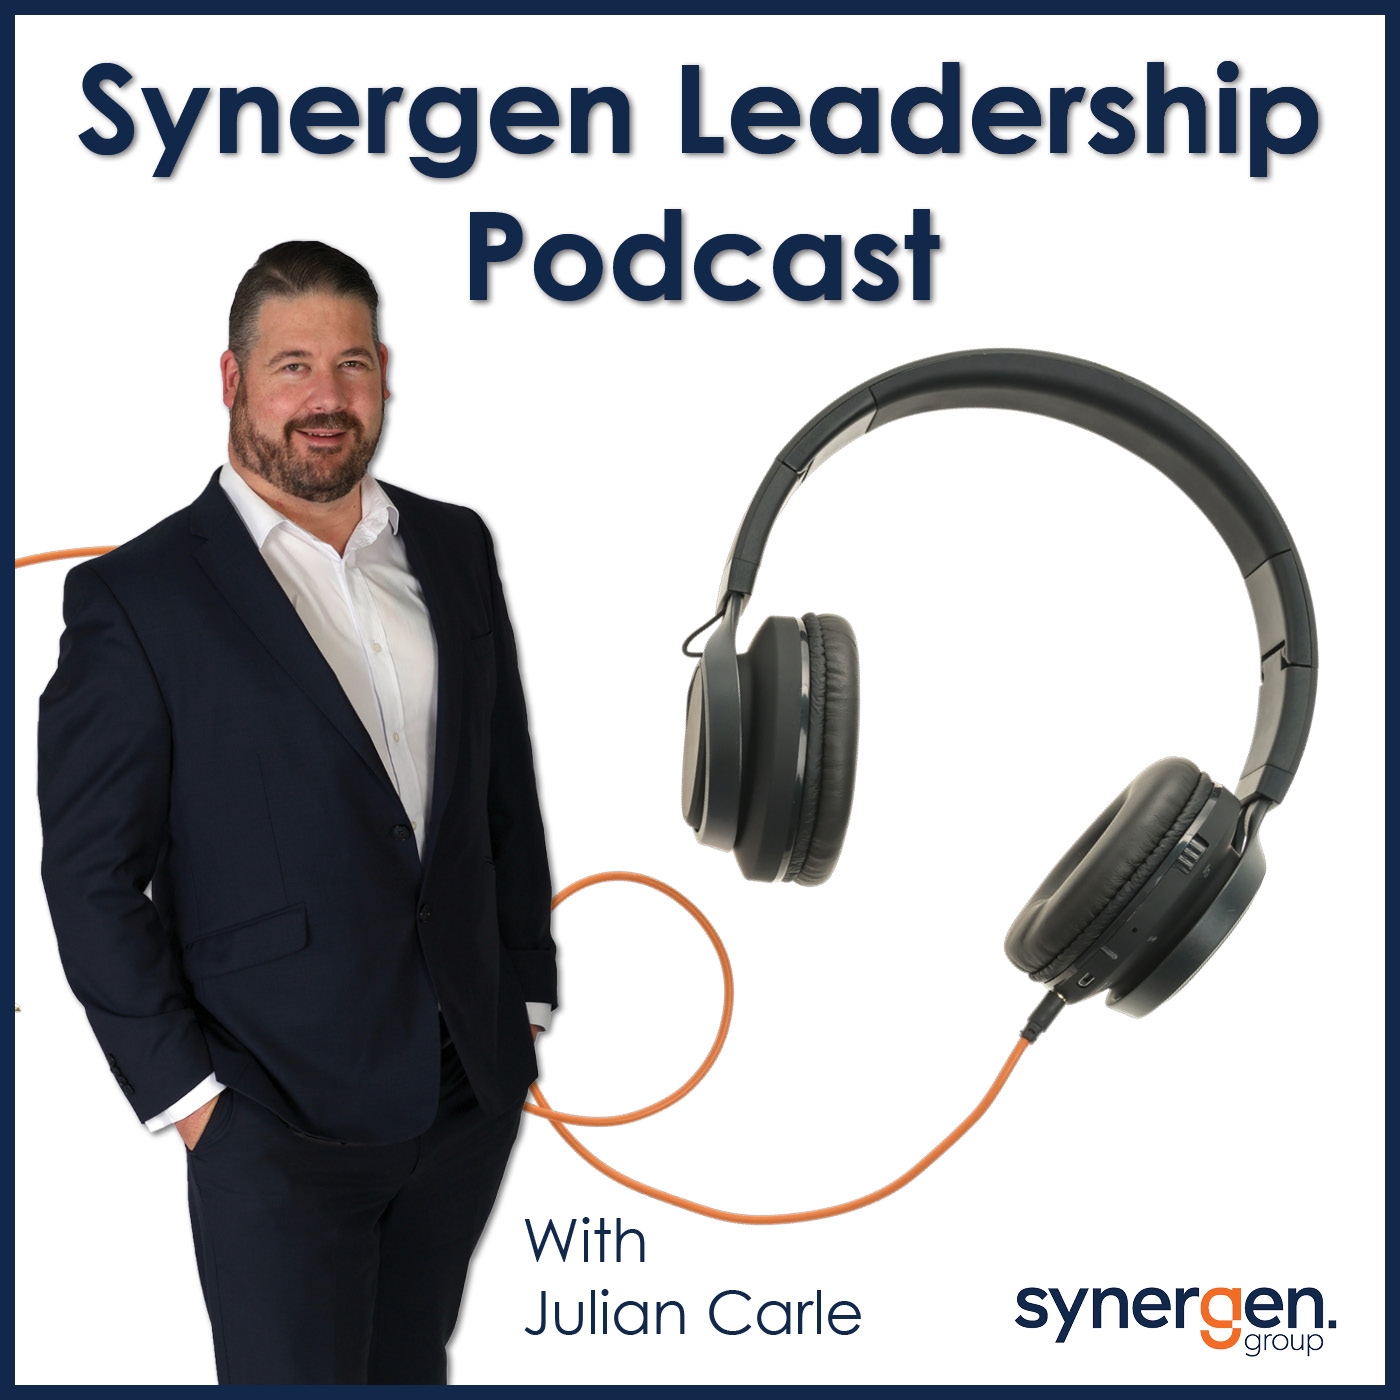 Synergen Leadership Podcast show art